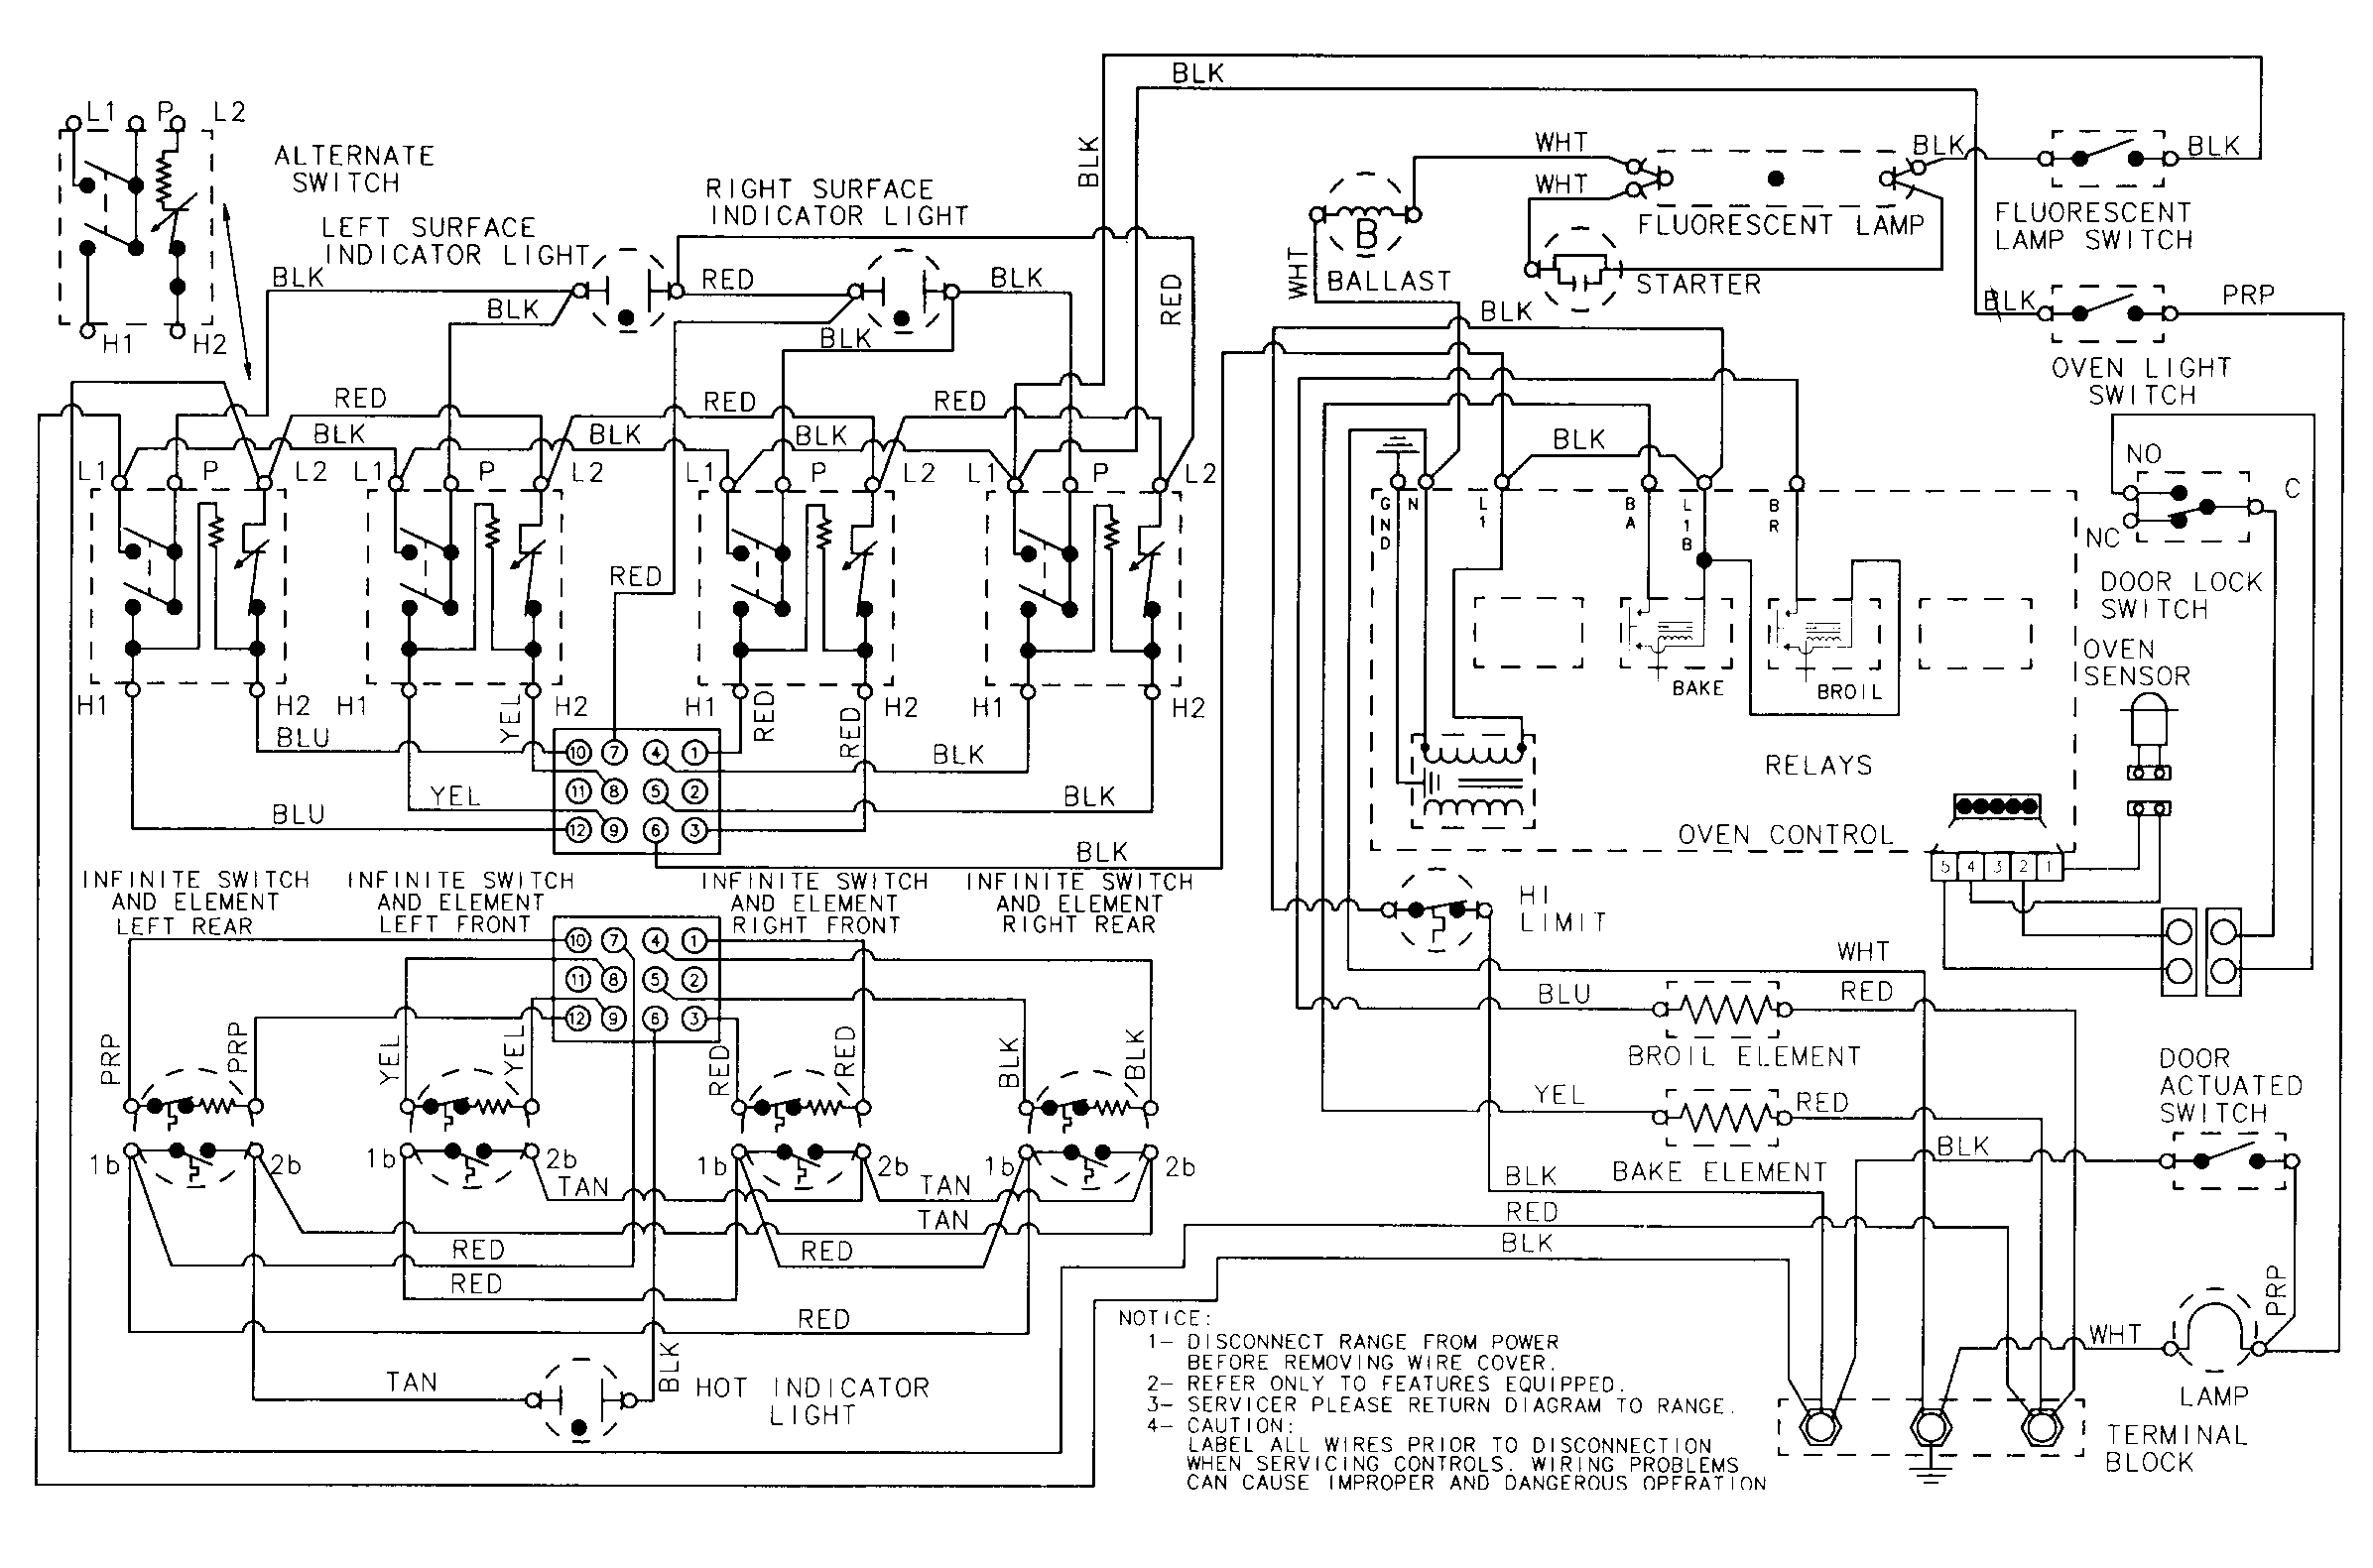 maytag washer wiring diagram Download-CRE9600 Range Wiring information Parts diagram 3-l